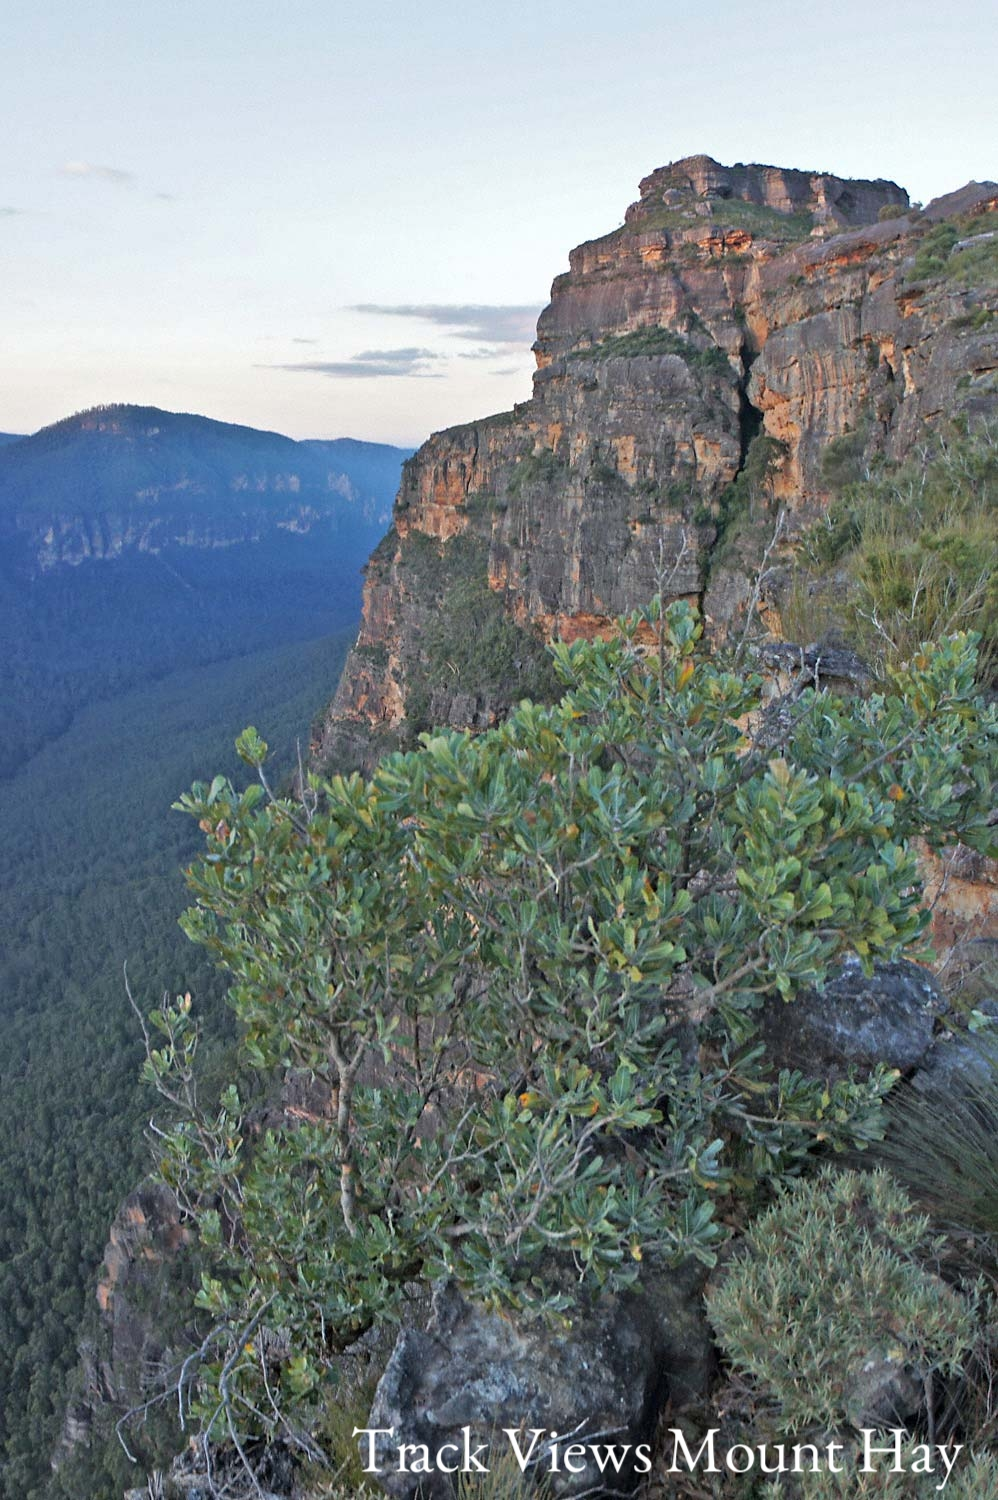 Warren-Hinder-Butterbox-Point-Mt-Hay-looking-East.jpg